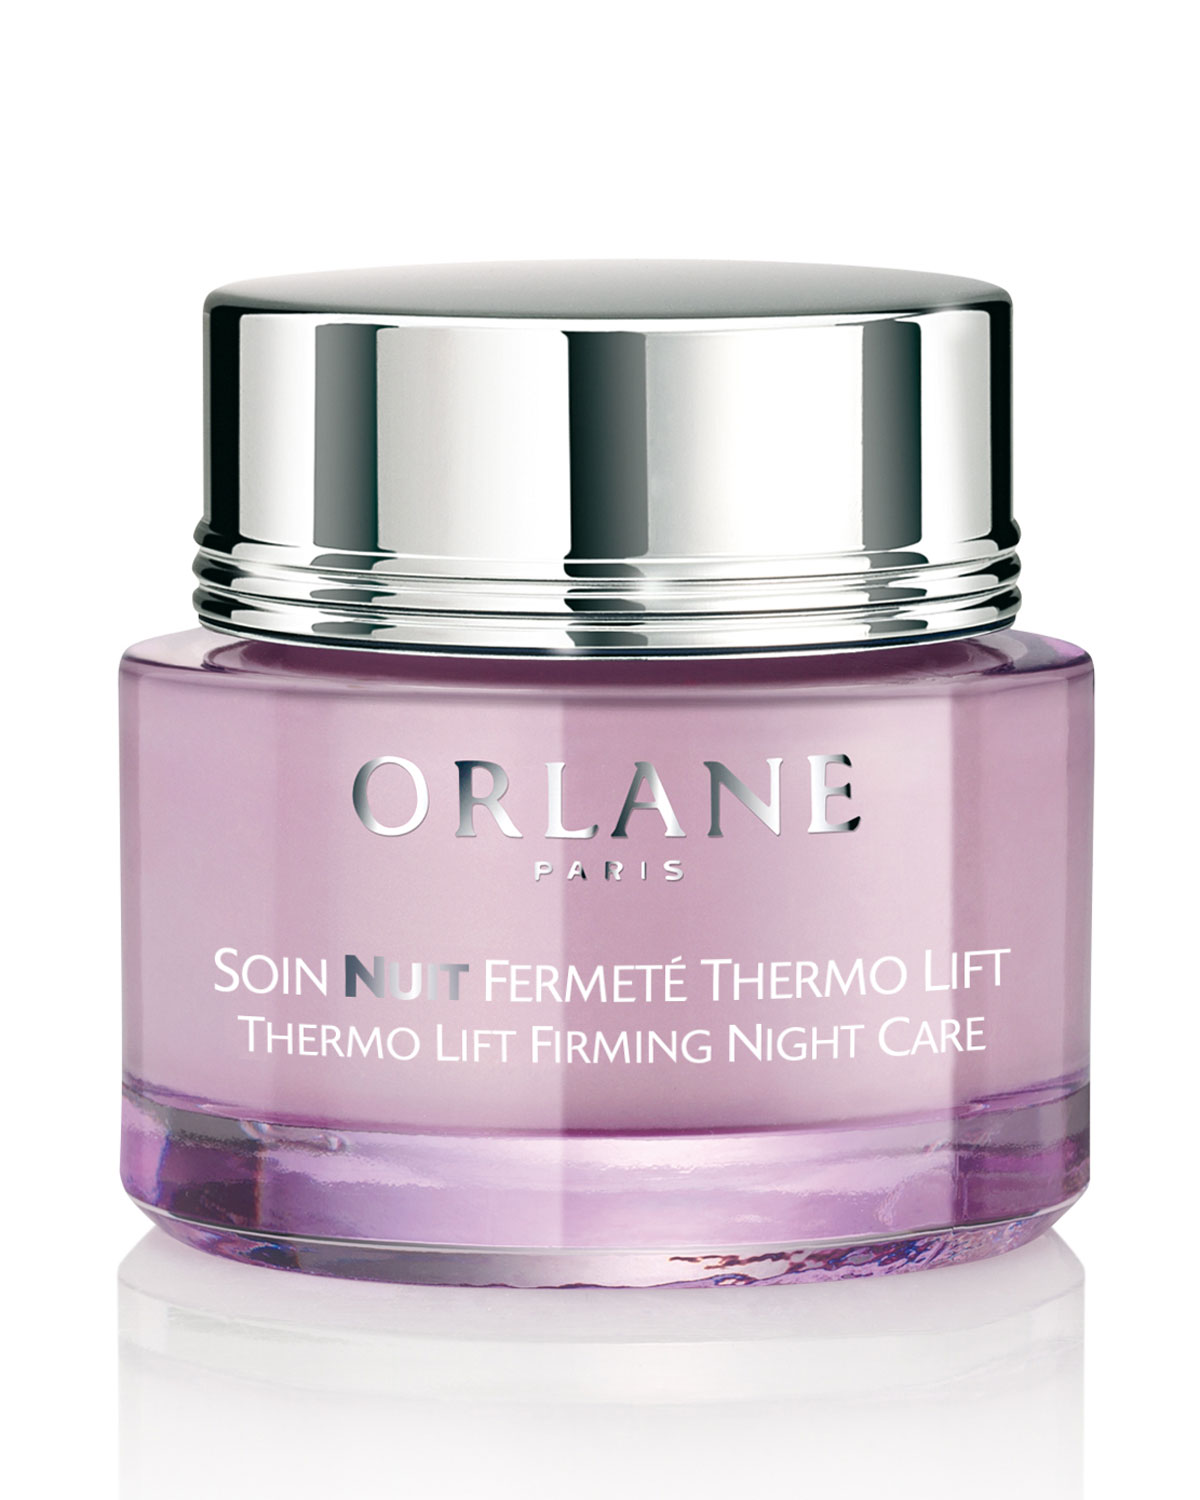 Orlane THERMO LIFT FIRMING NIGHT CARE, 1.7 OZ./ 50 ML